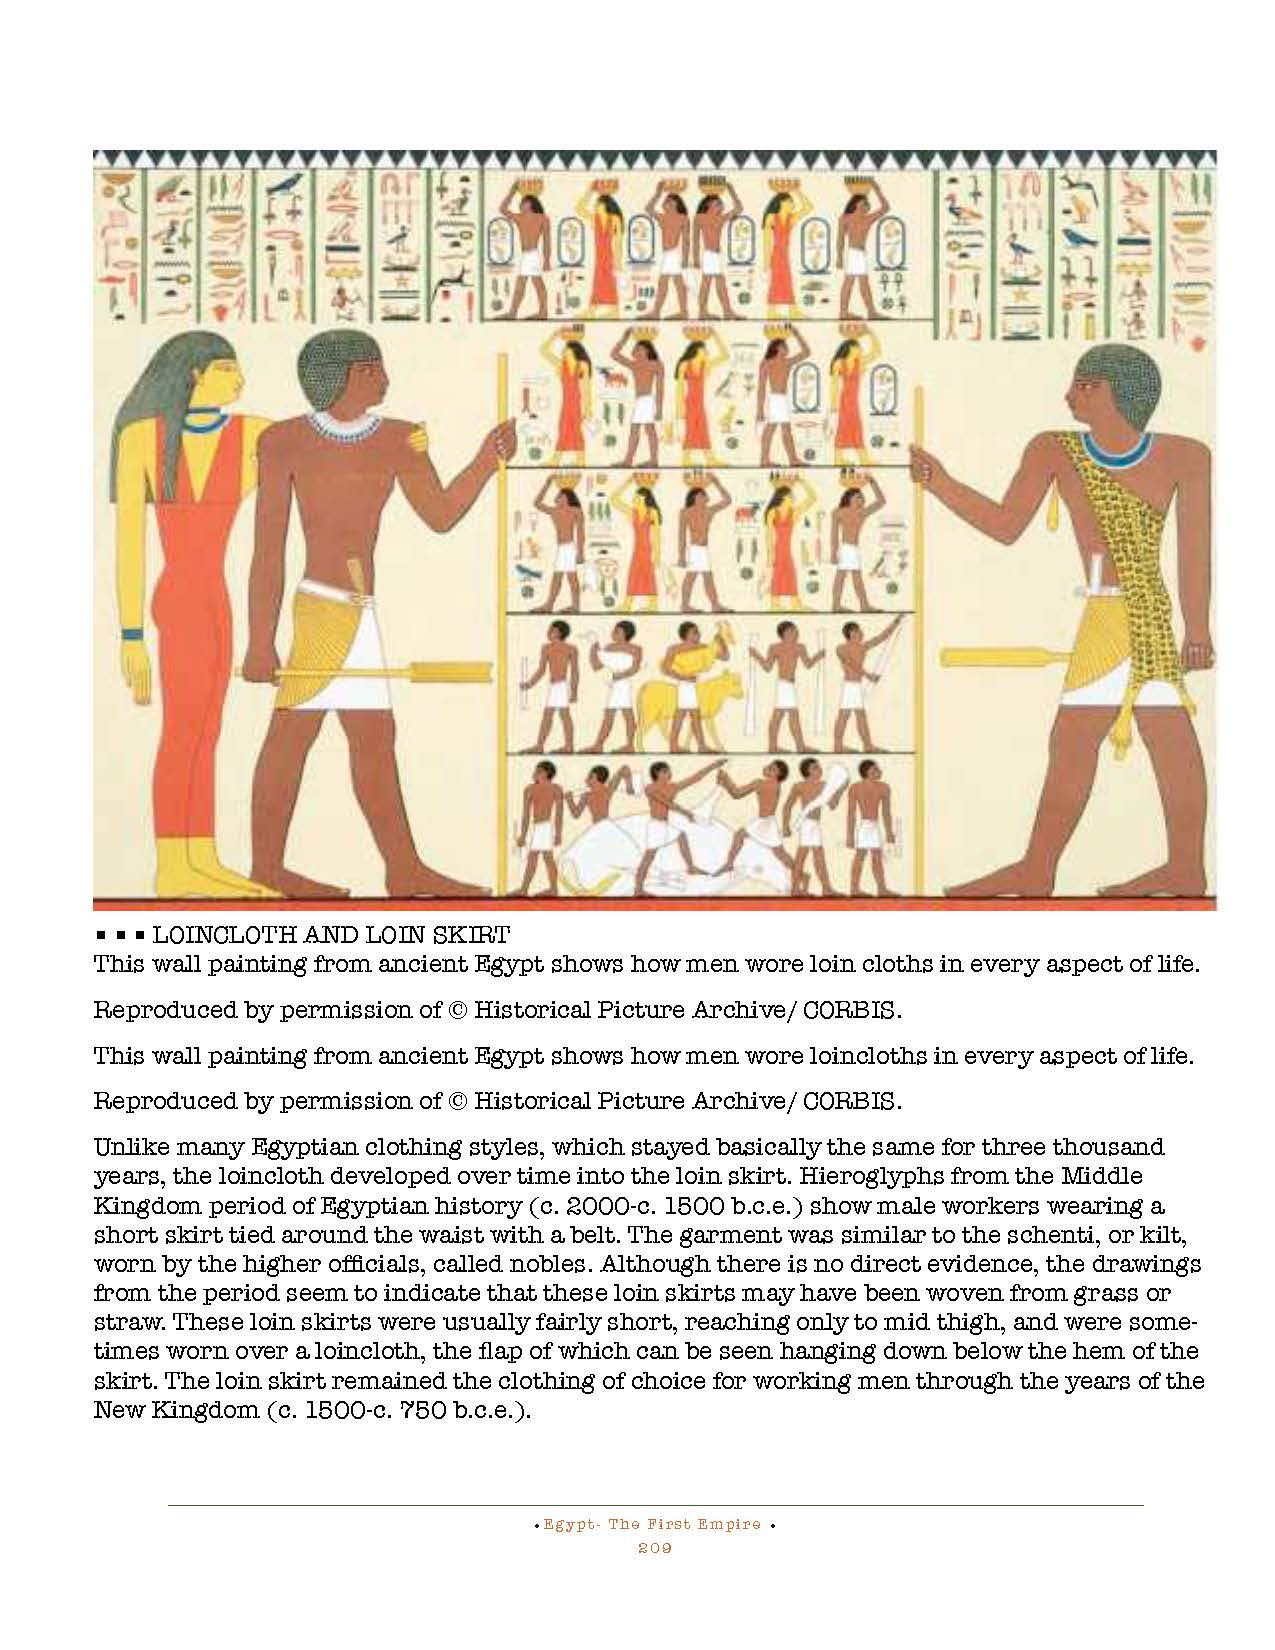 HOCE- Egypt  (First Empire) Notes_Page_209.jpg